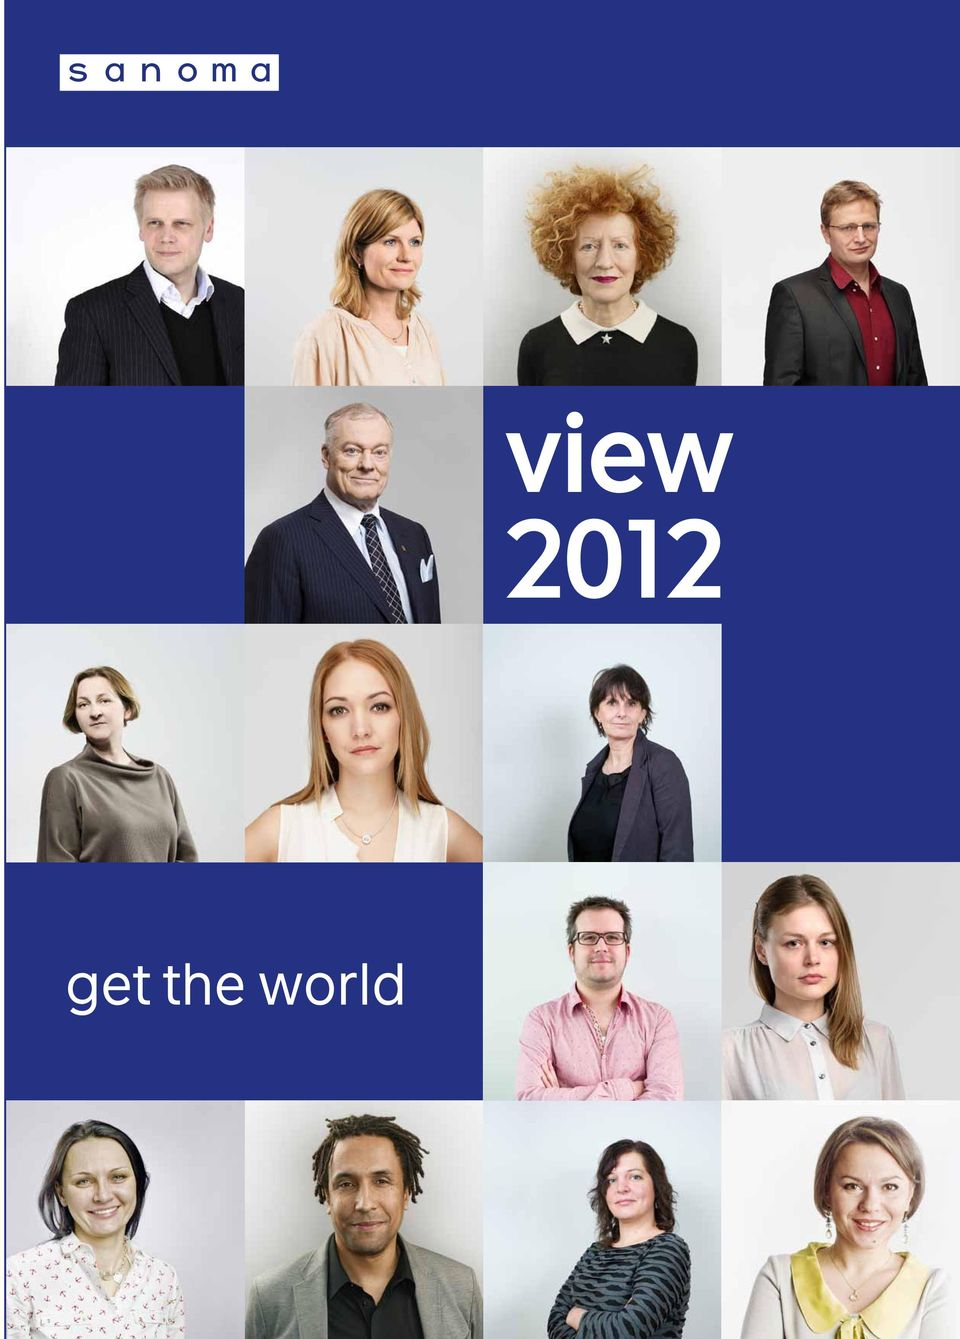 view 2012